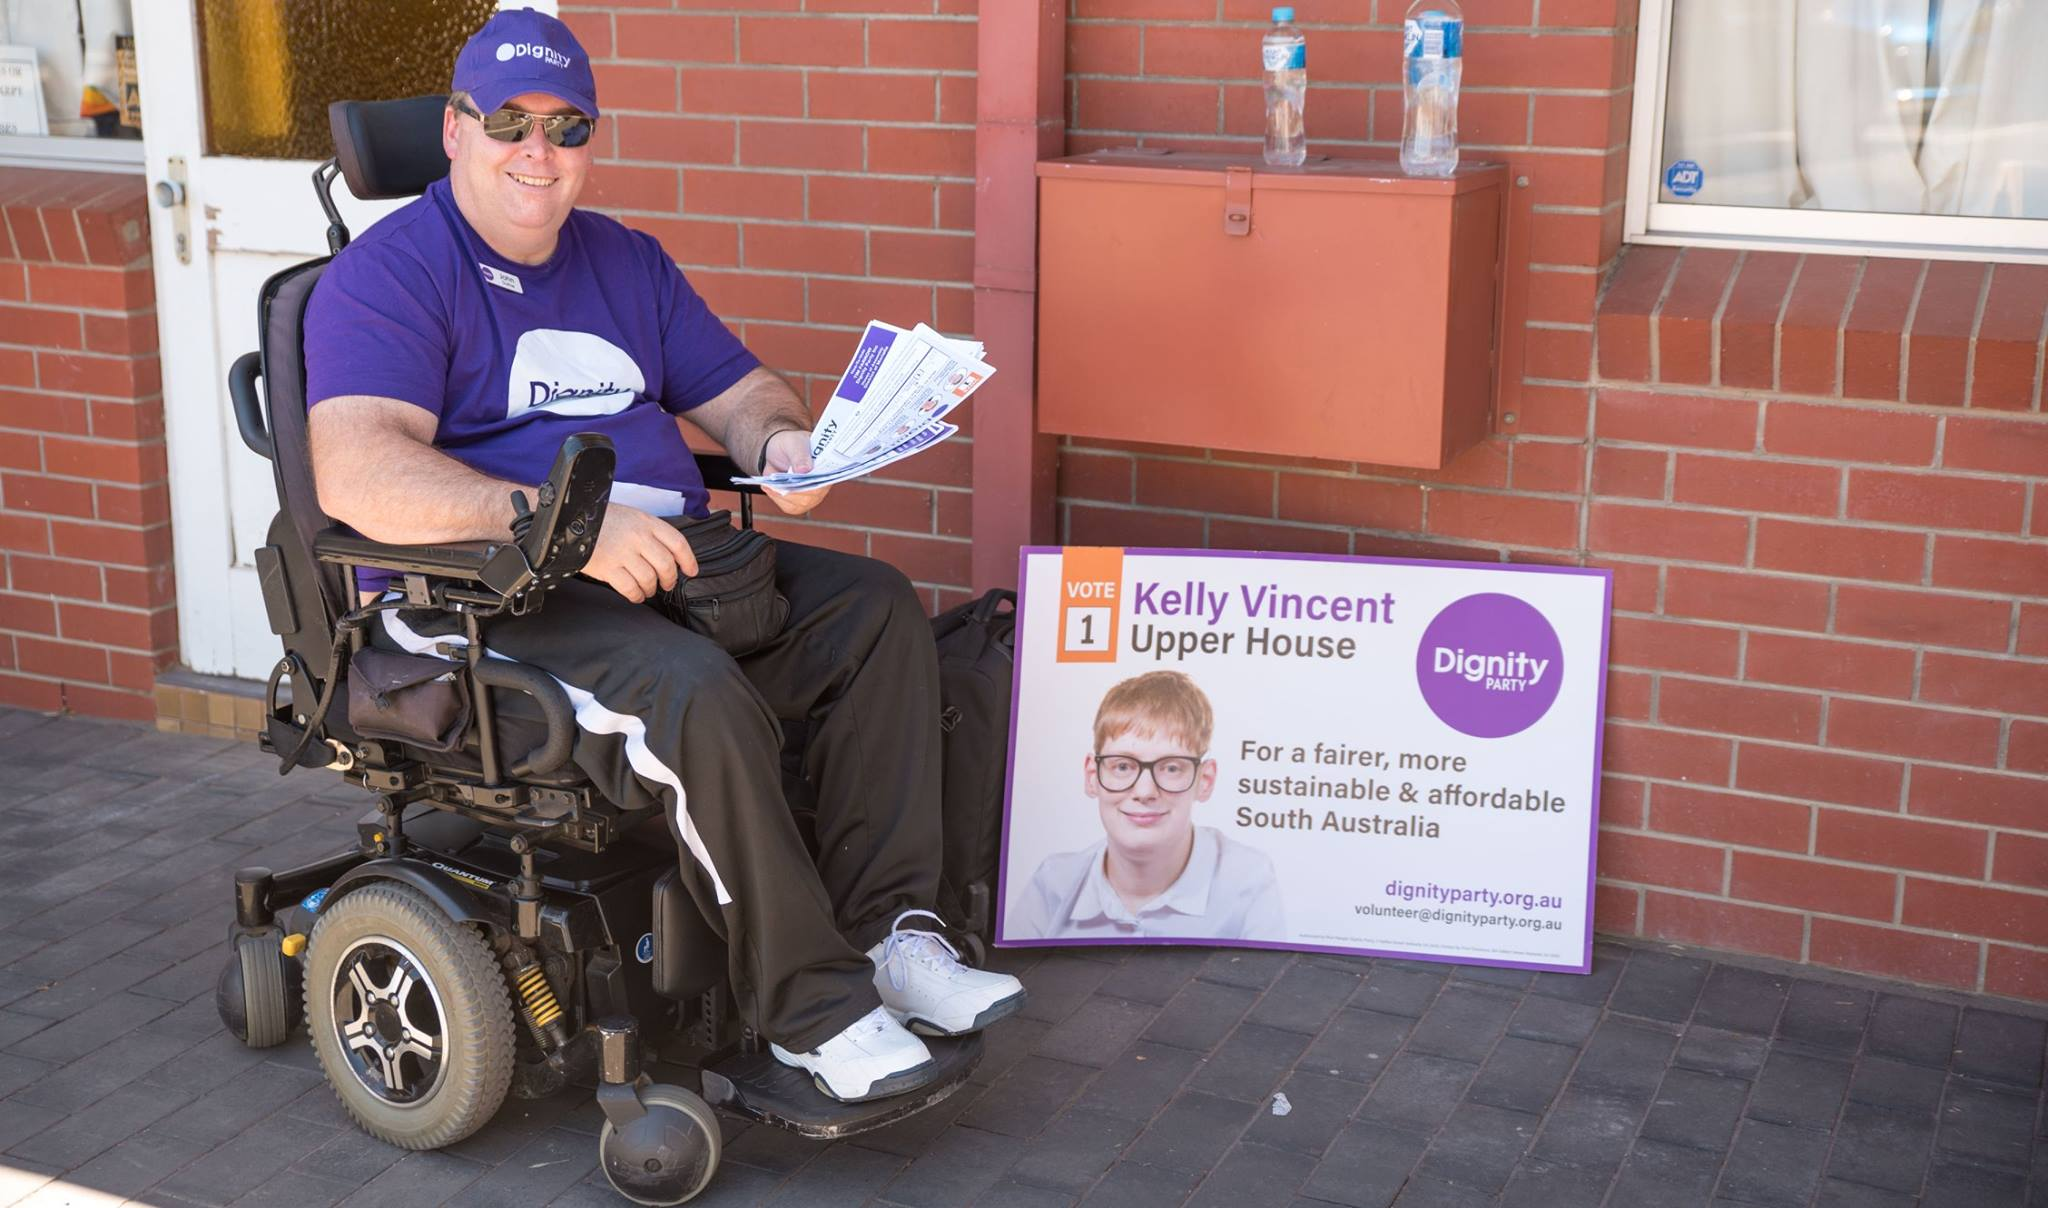 john duthie in a wheelchair looking quite fat and handing out how to vote cards - dignity party campaign